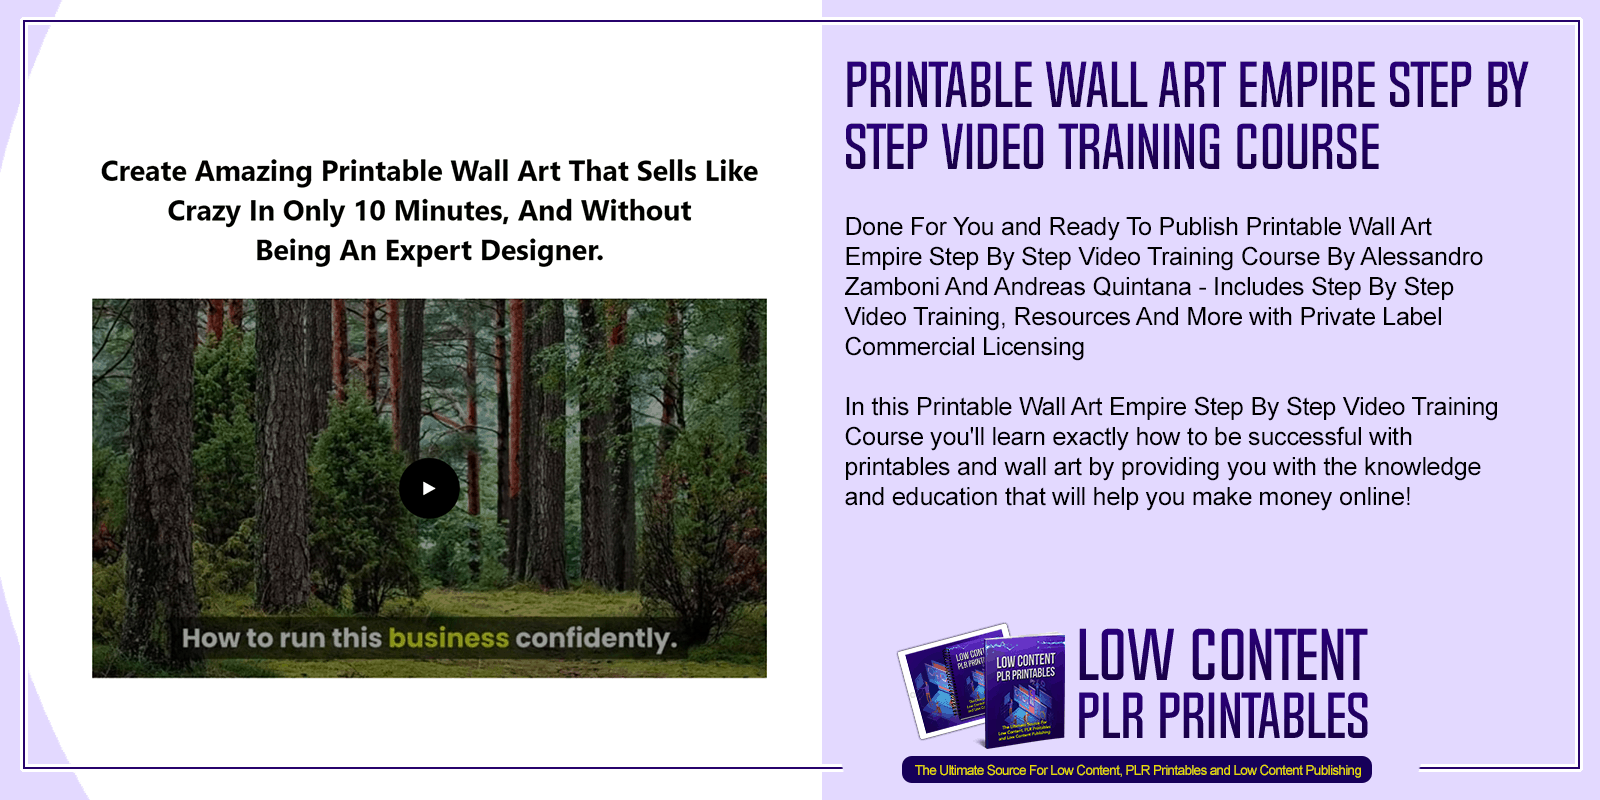 Printable Wall Art Empire Step By Step Video Training Course